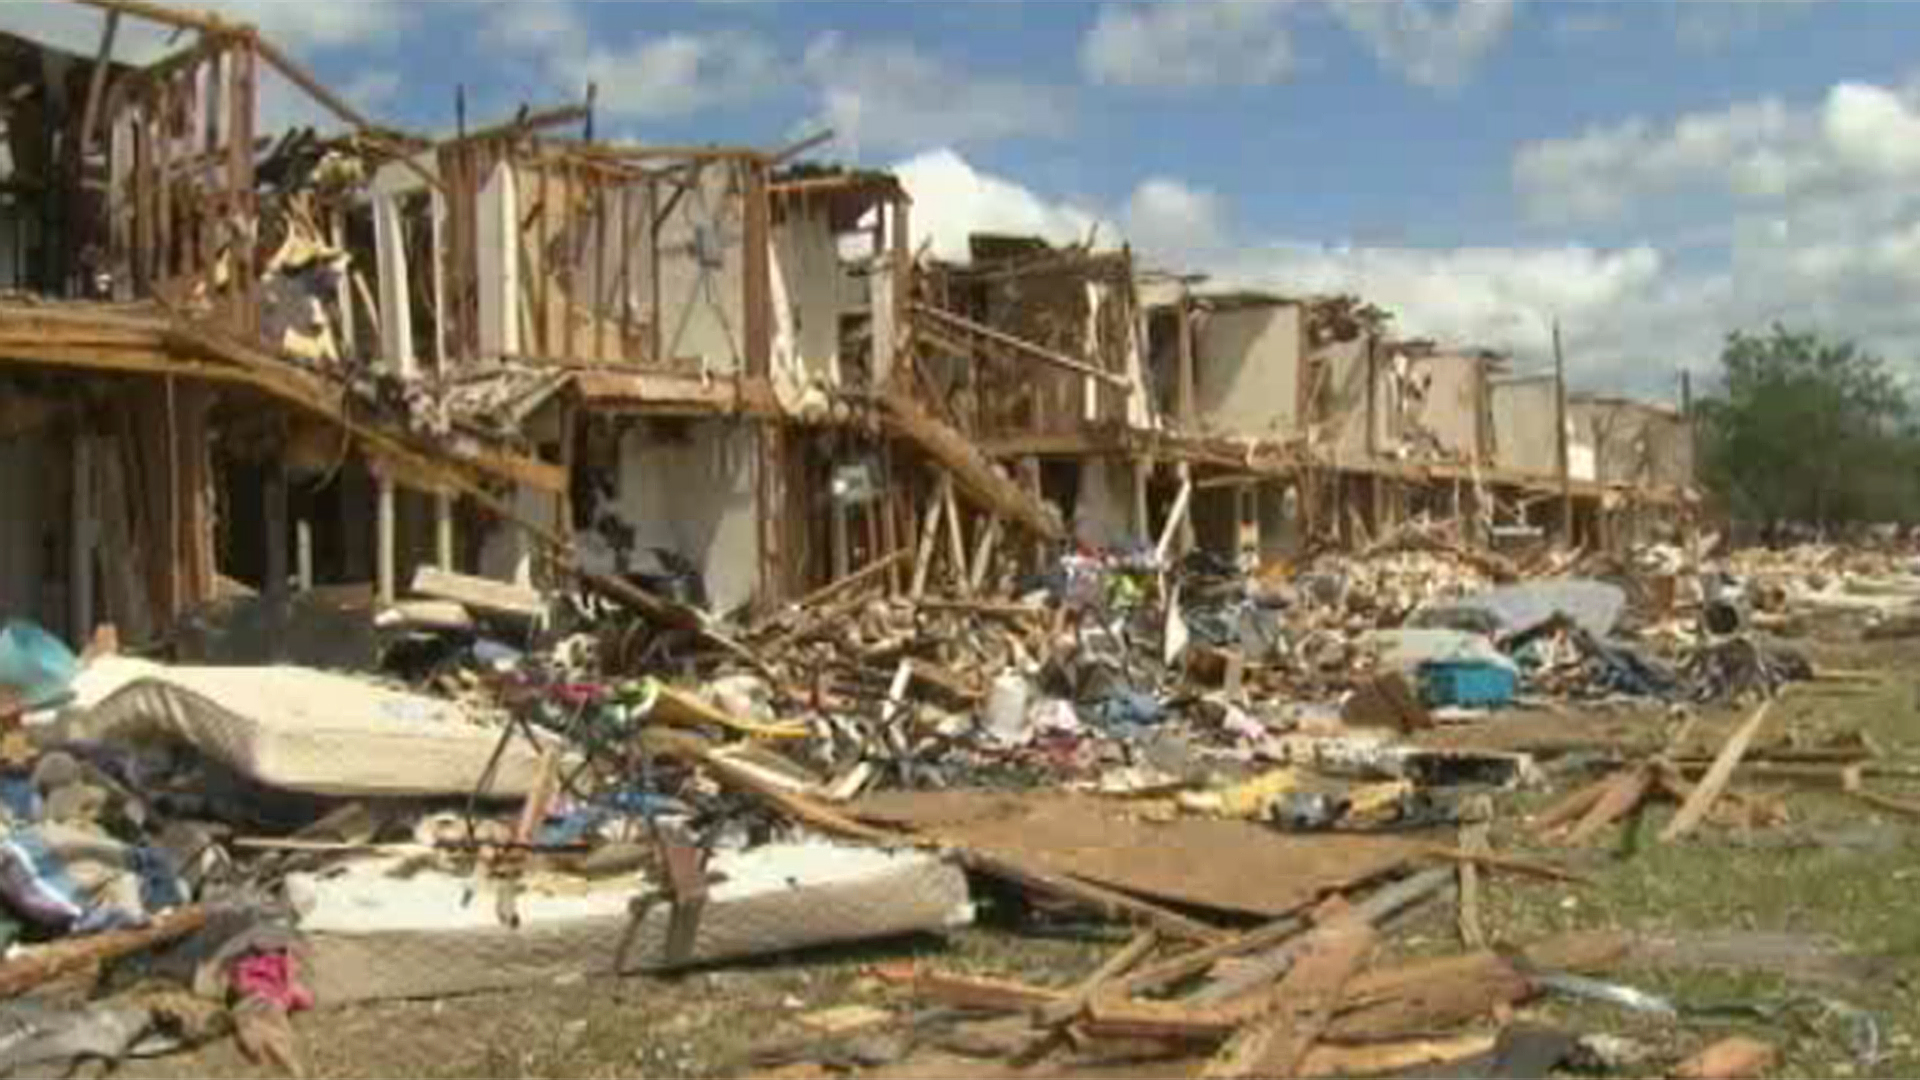 the west fertilizer plant explosion essay The west fertilizer plant explosion essay - the west fertilizer plant explosion on april 17, 2013, the community of west, texas, suffered a devastating and heartbreaking event in the evening hours.